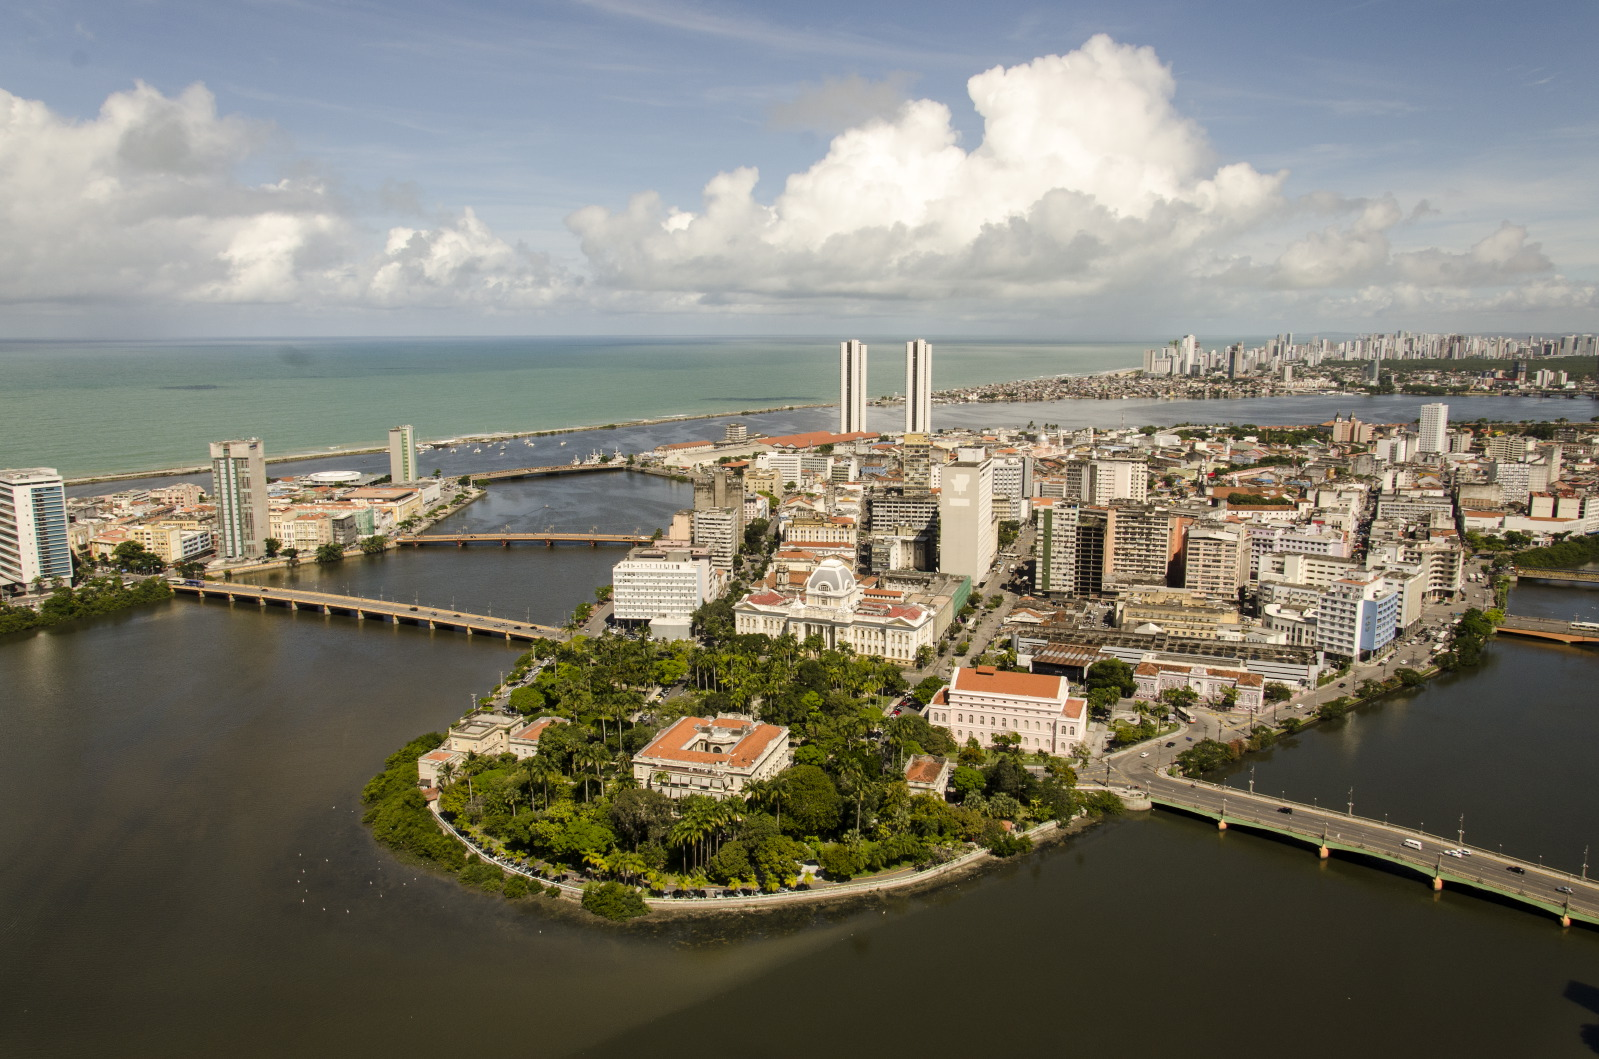 The Antônio Vaz island and some of the water systems and bridges that characterise the city (photo: Portal da Copa/ME / licensed under CC BY 3.0 BR).